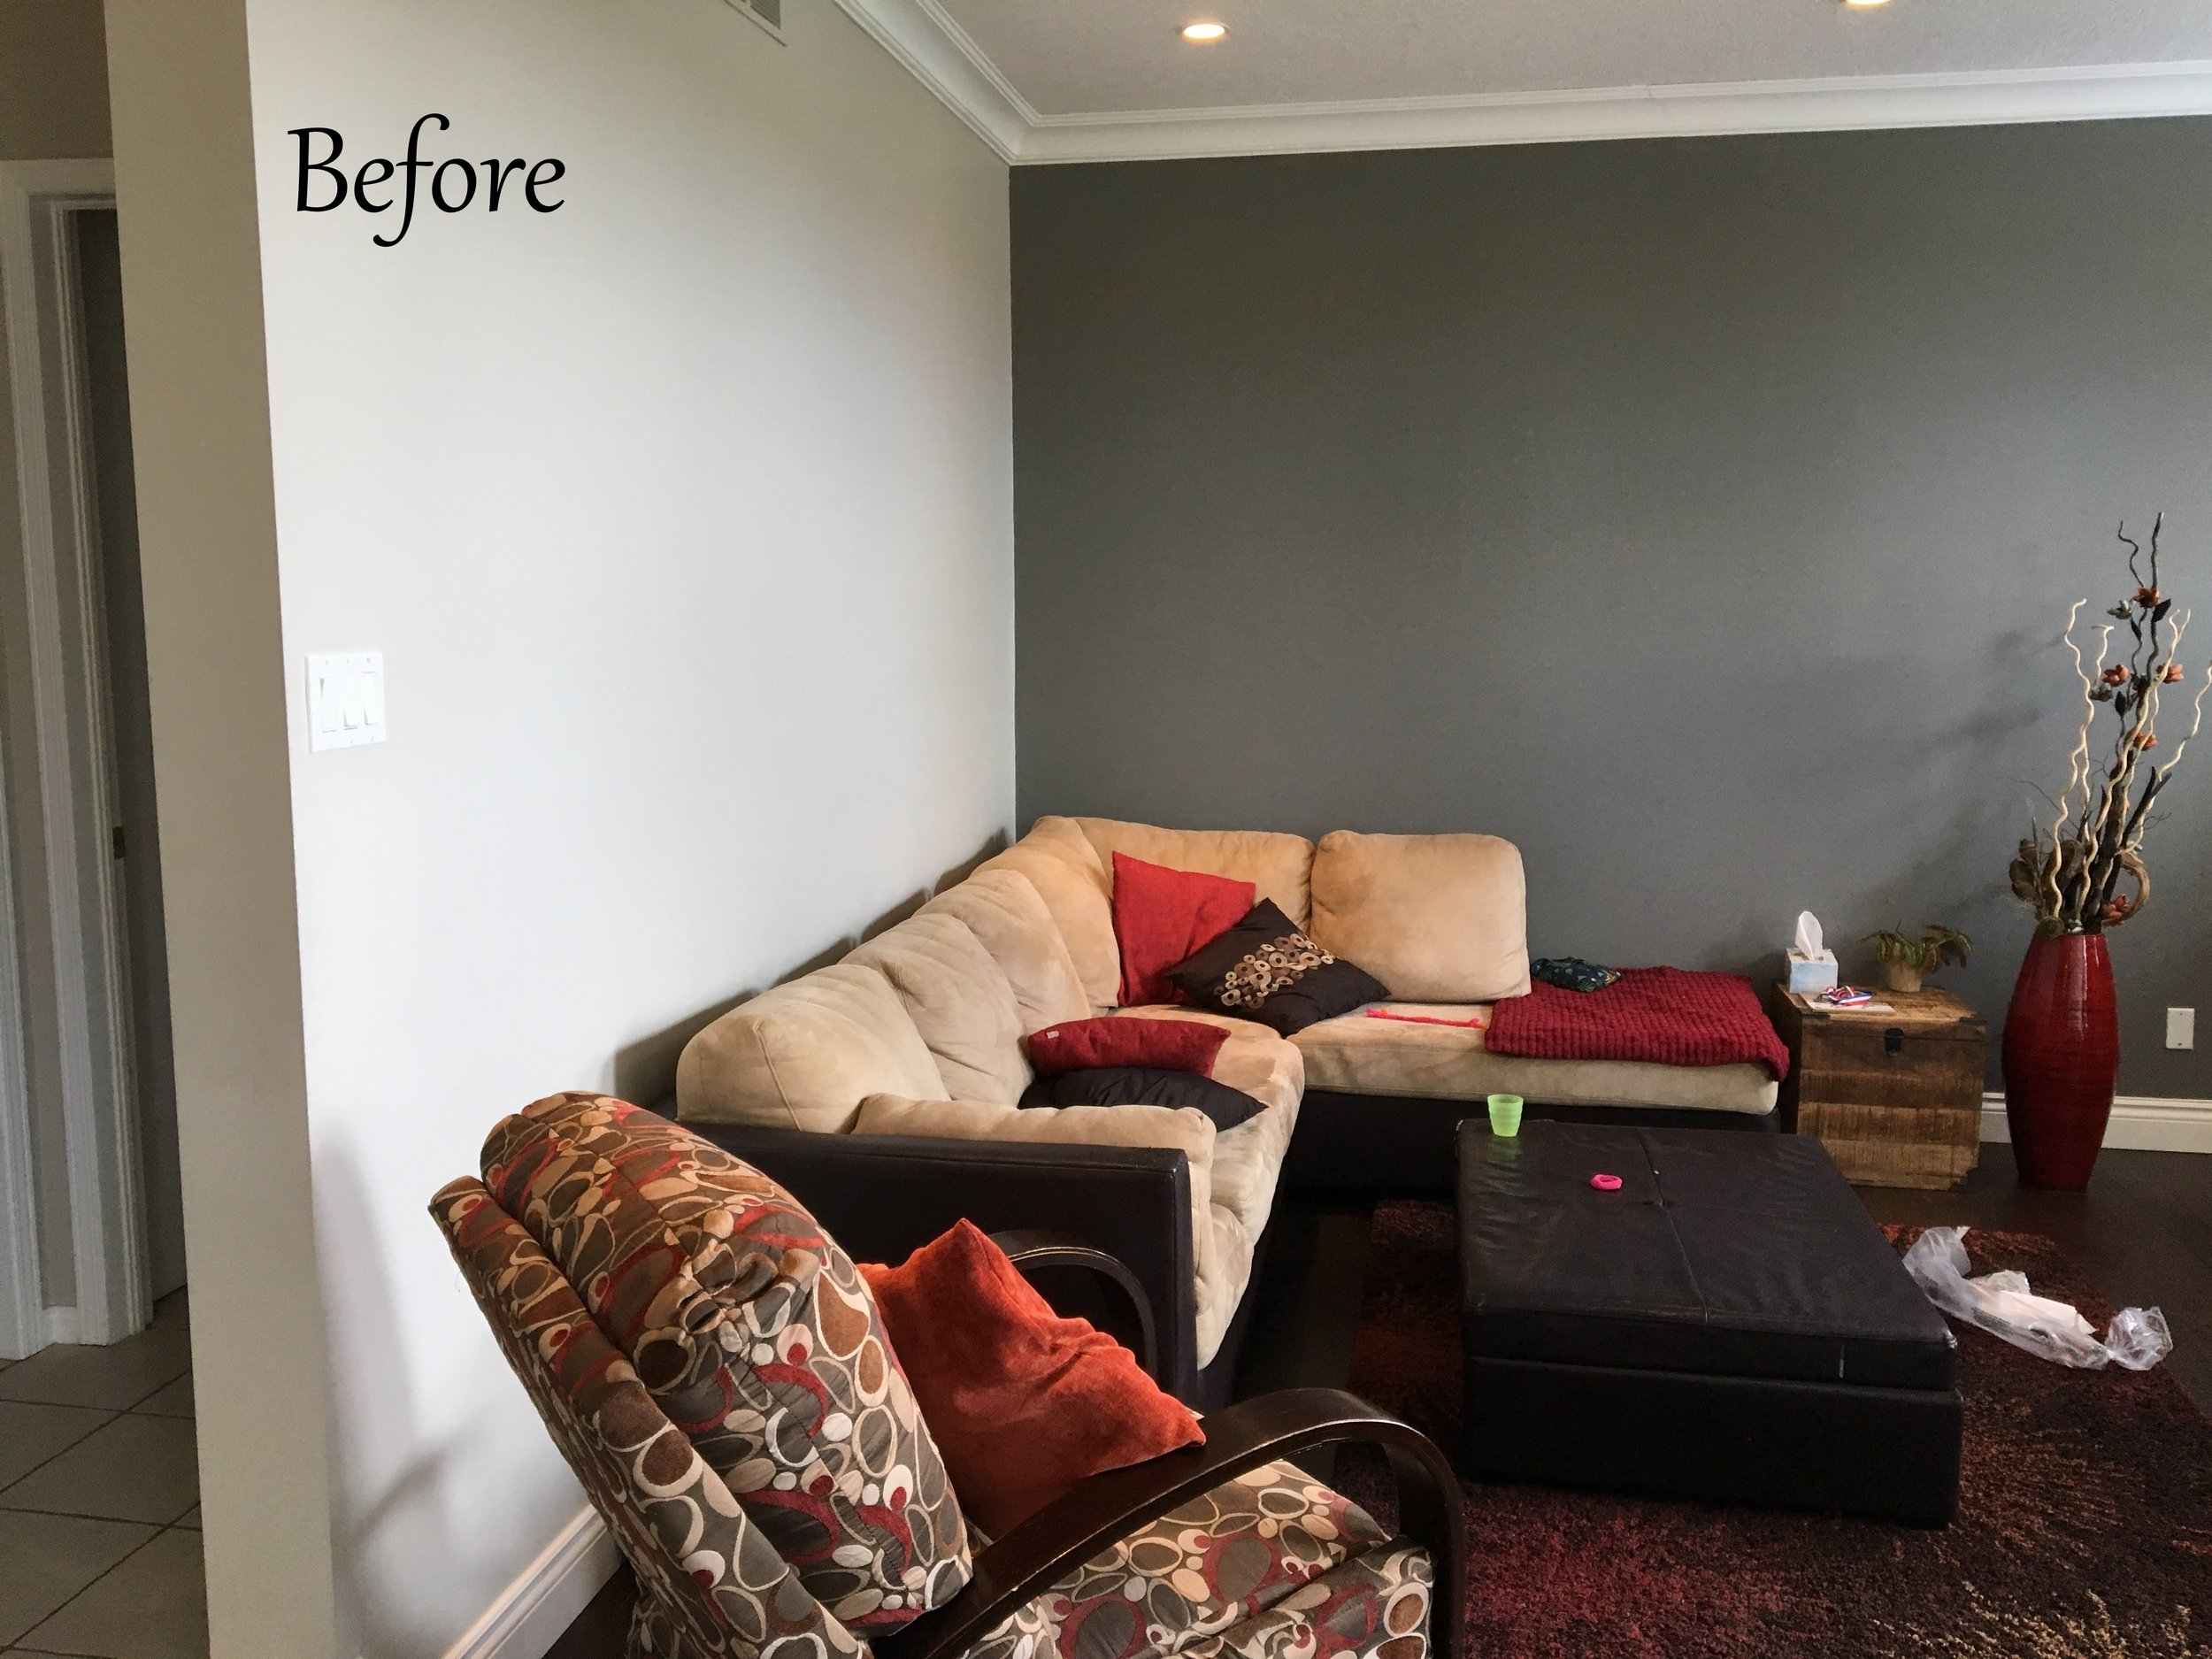 BN Living Room 1 - Before.jpg